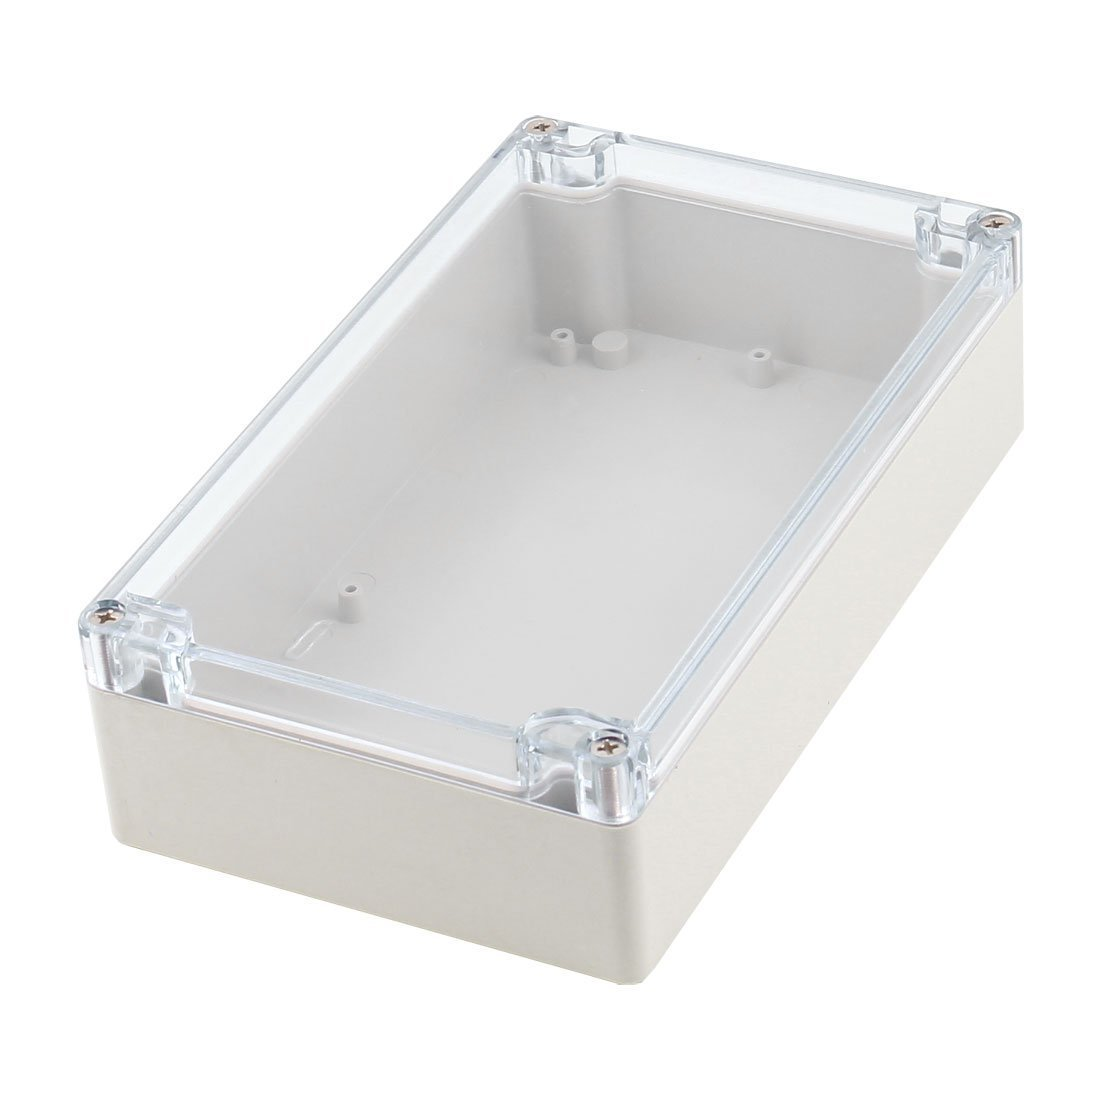 sourcingmap® Surface Mount Sealed Dustproof IP65 Plastic Electric Junction Box Switch Connection Enclosure Case 200mm x 120mm x 55mm a14110400ux0092